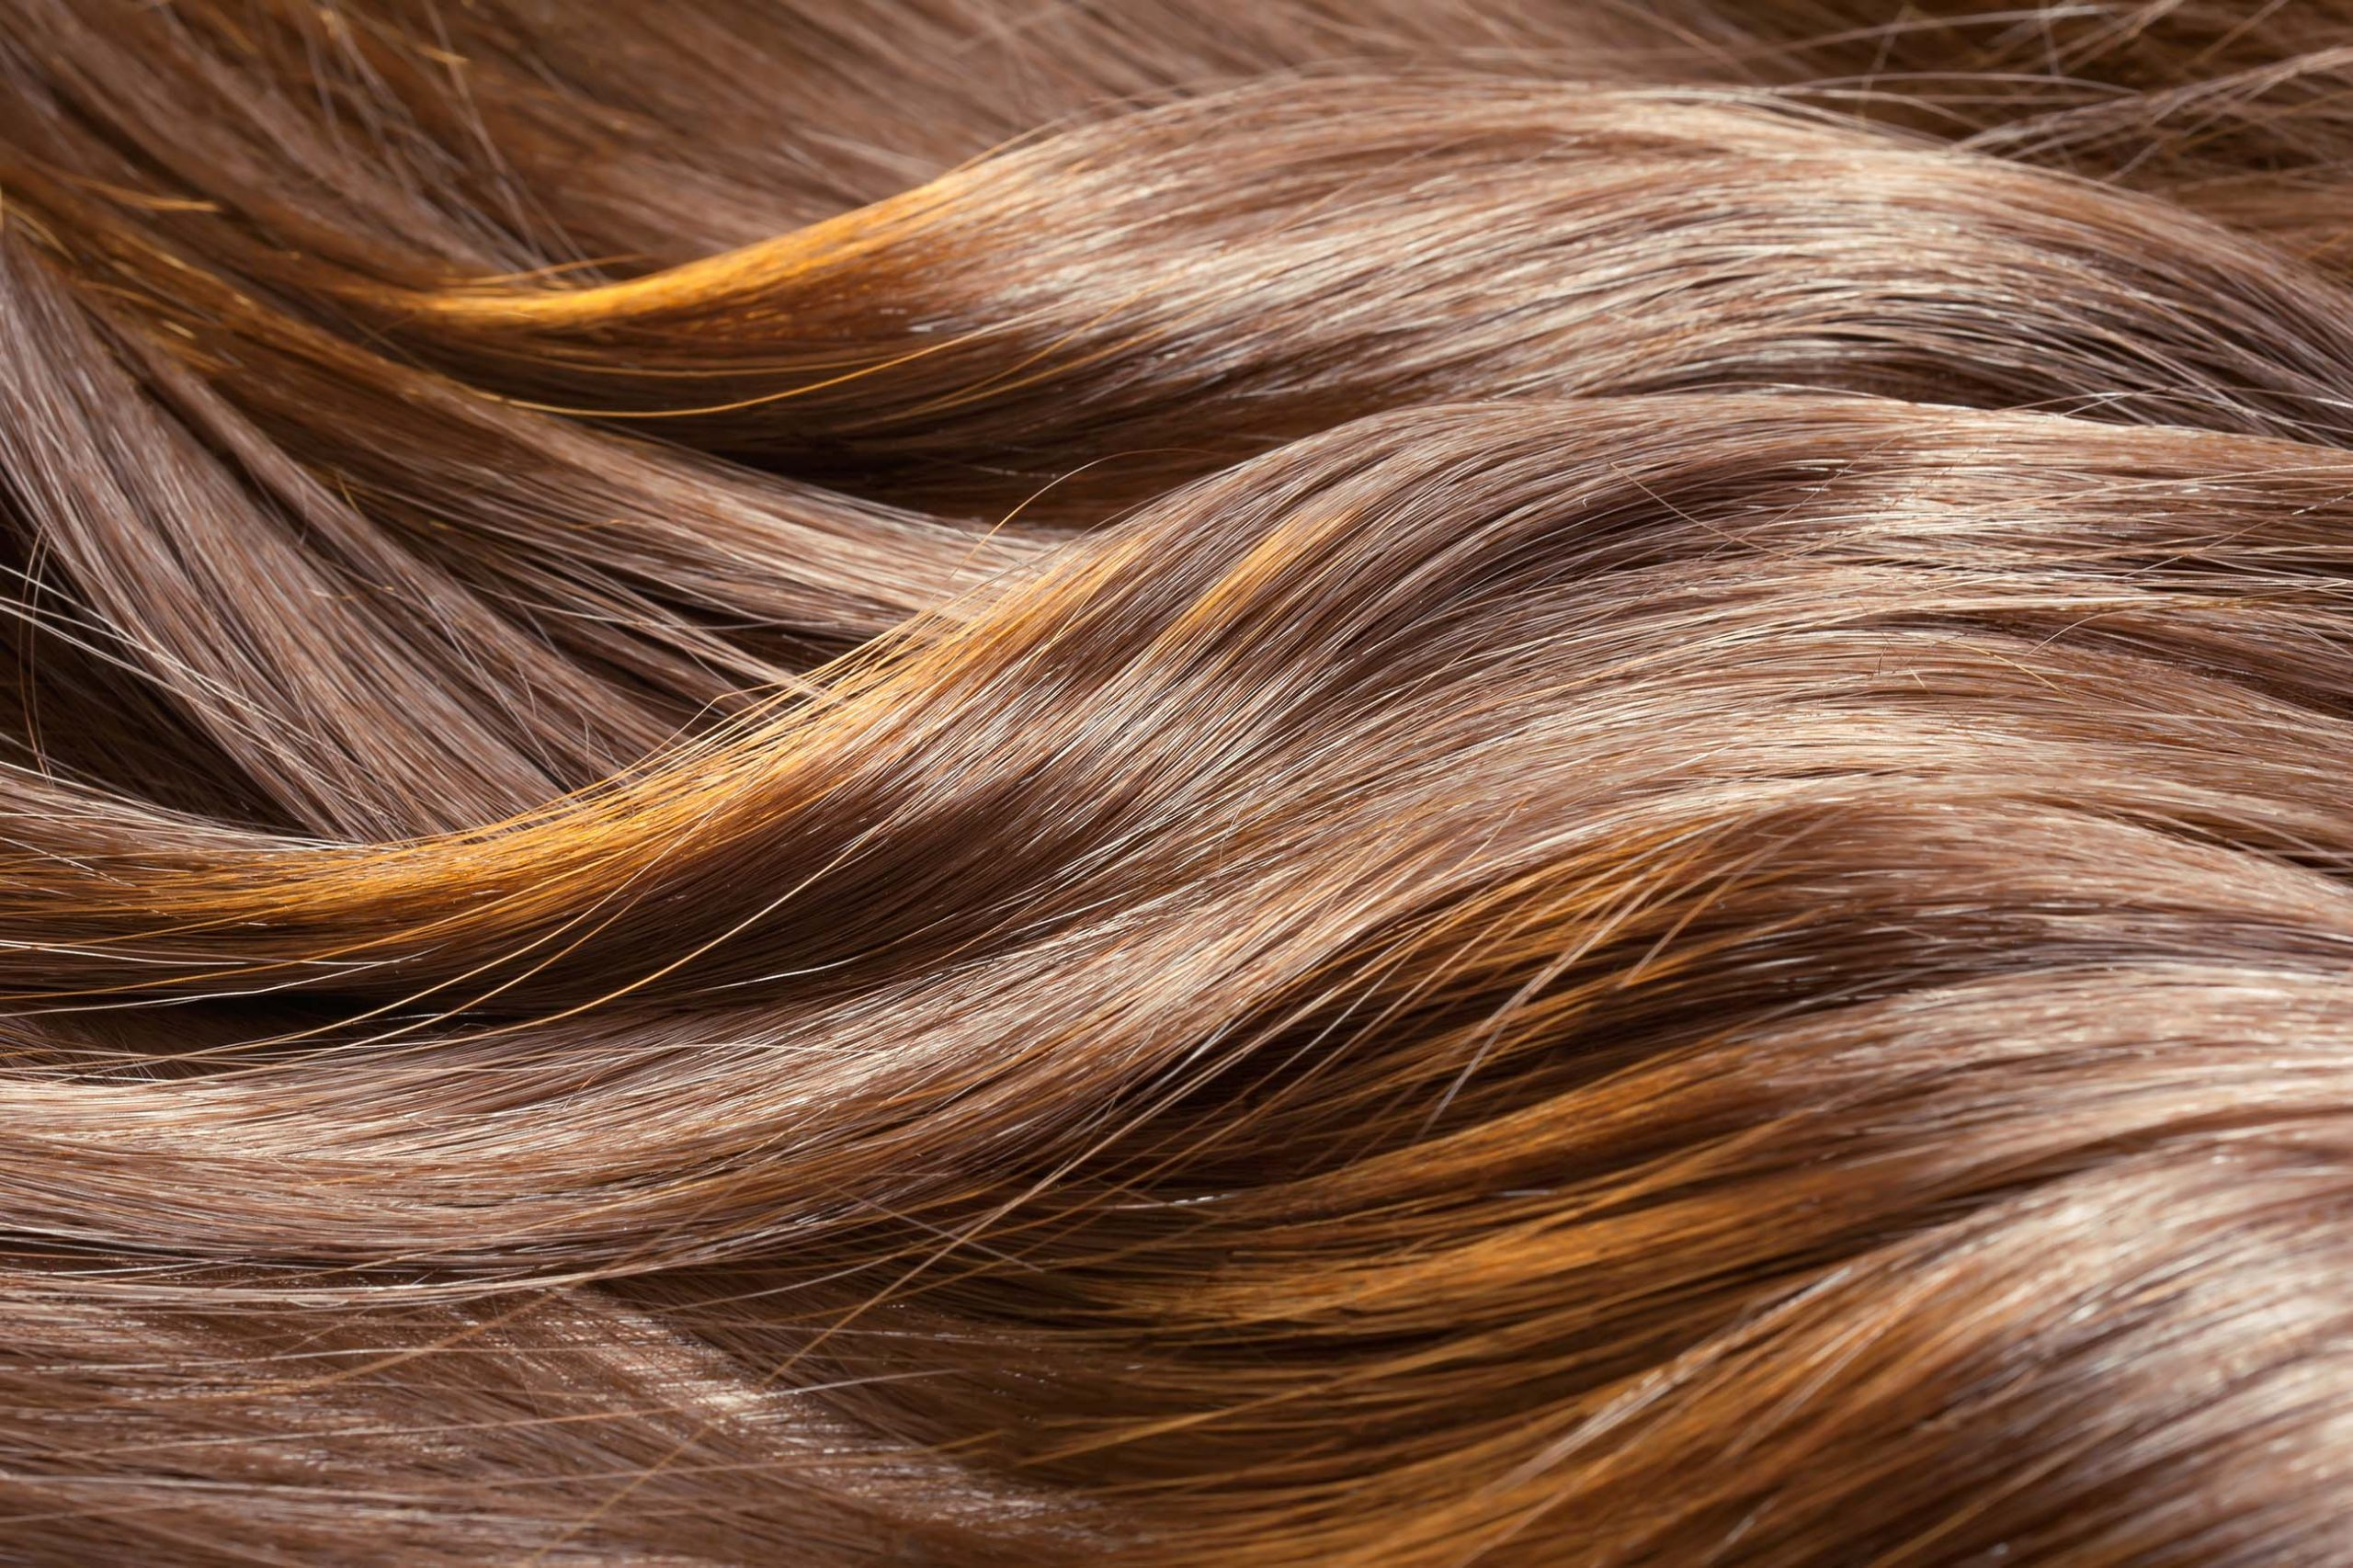 Close-Up Shot of Curled Highlighted Hair